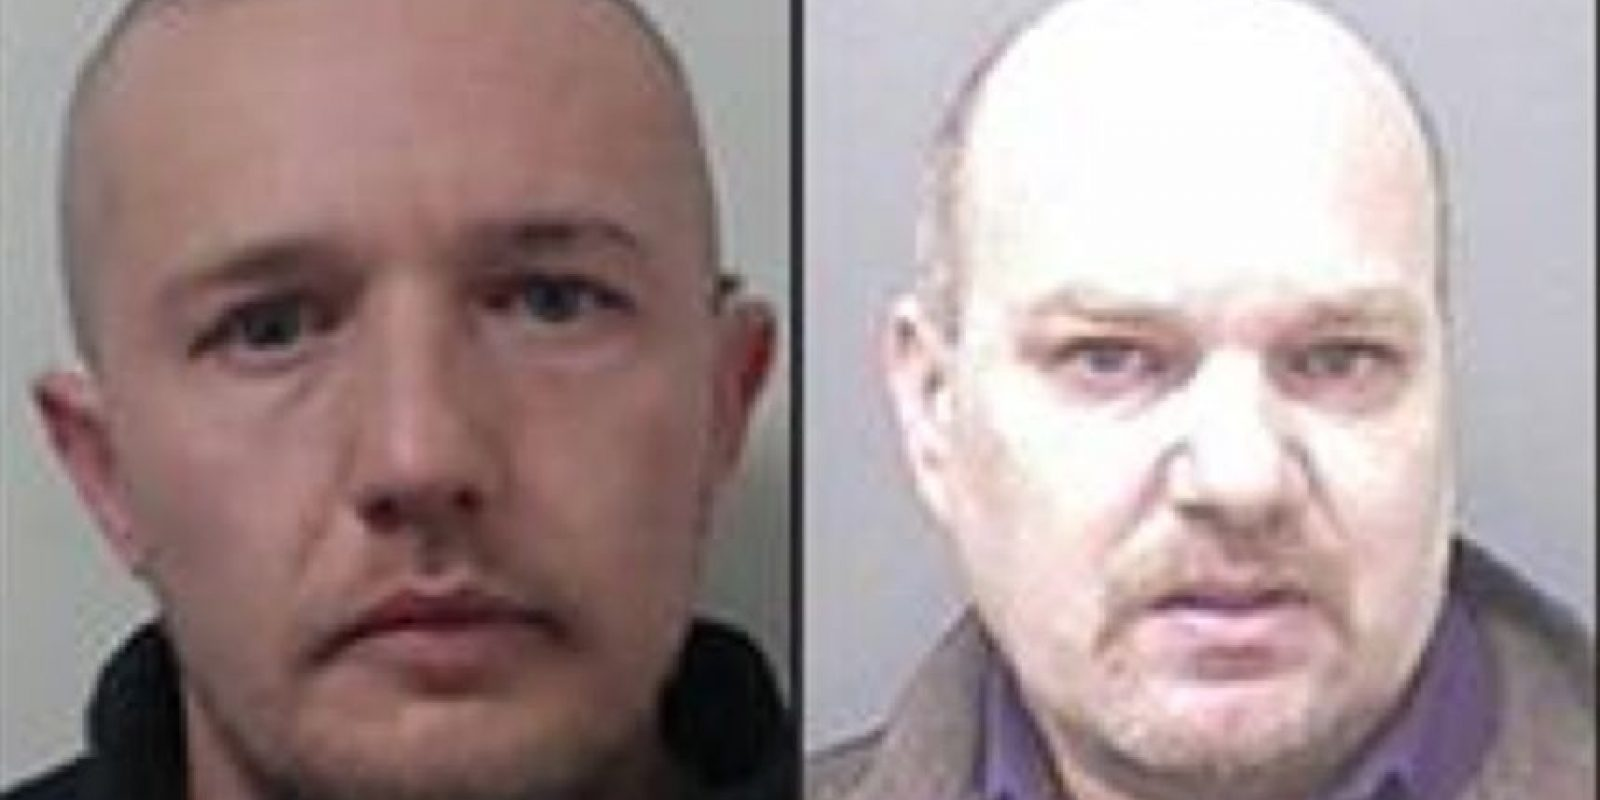 De Izquierda a derecha: Chris Knight 35, David Harsley 51 Foto: Vía www.nationalcrimeagency.gov.uk